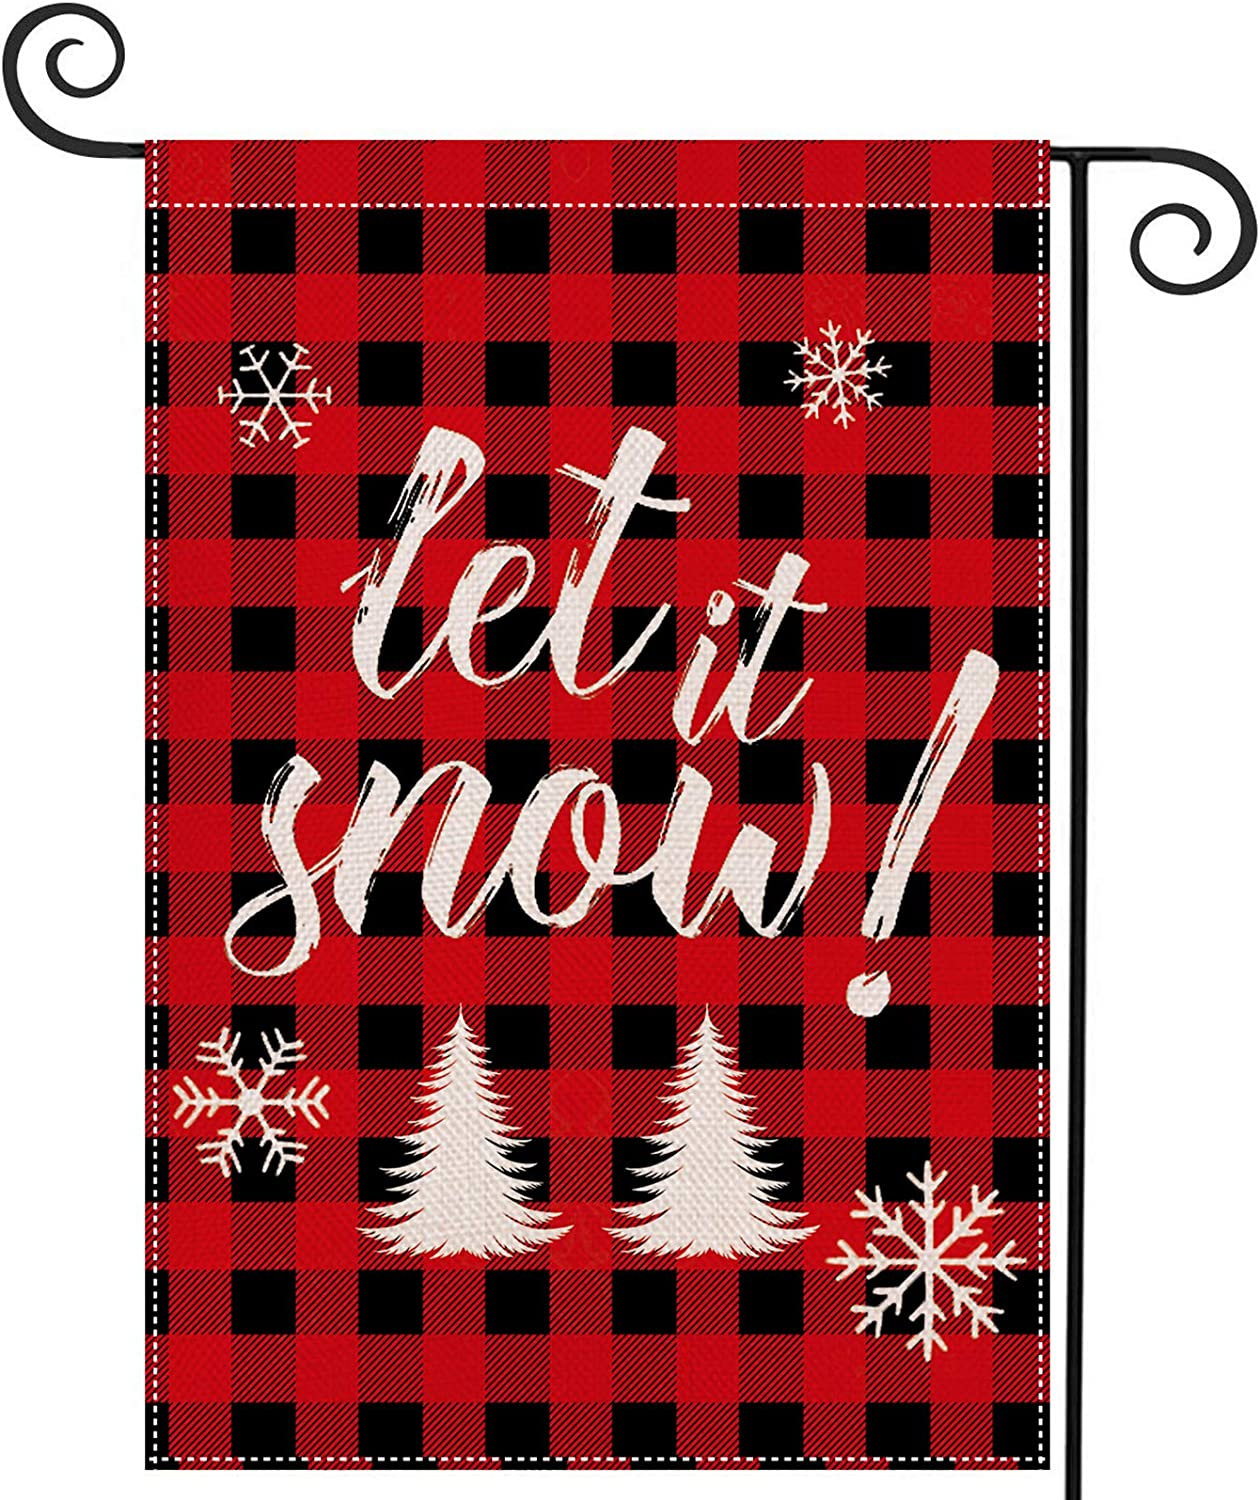 """EKOREST Christmas Garden Flag for Outside Let It Snow Flag Red Buffalo Plaid Christmas Decor 12.5"""" x 18"""" Vertical Double Sided Merry Christmas Yard Sign Winter Decorations Farmhouse for Patio Outdoor"""